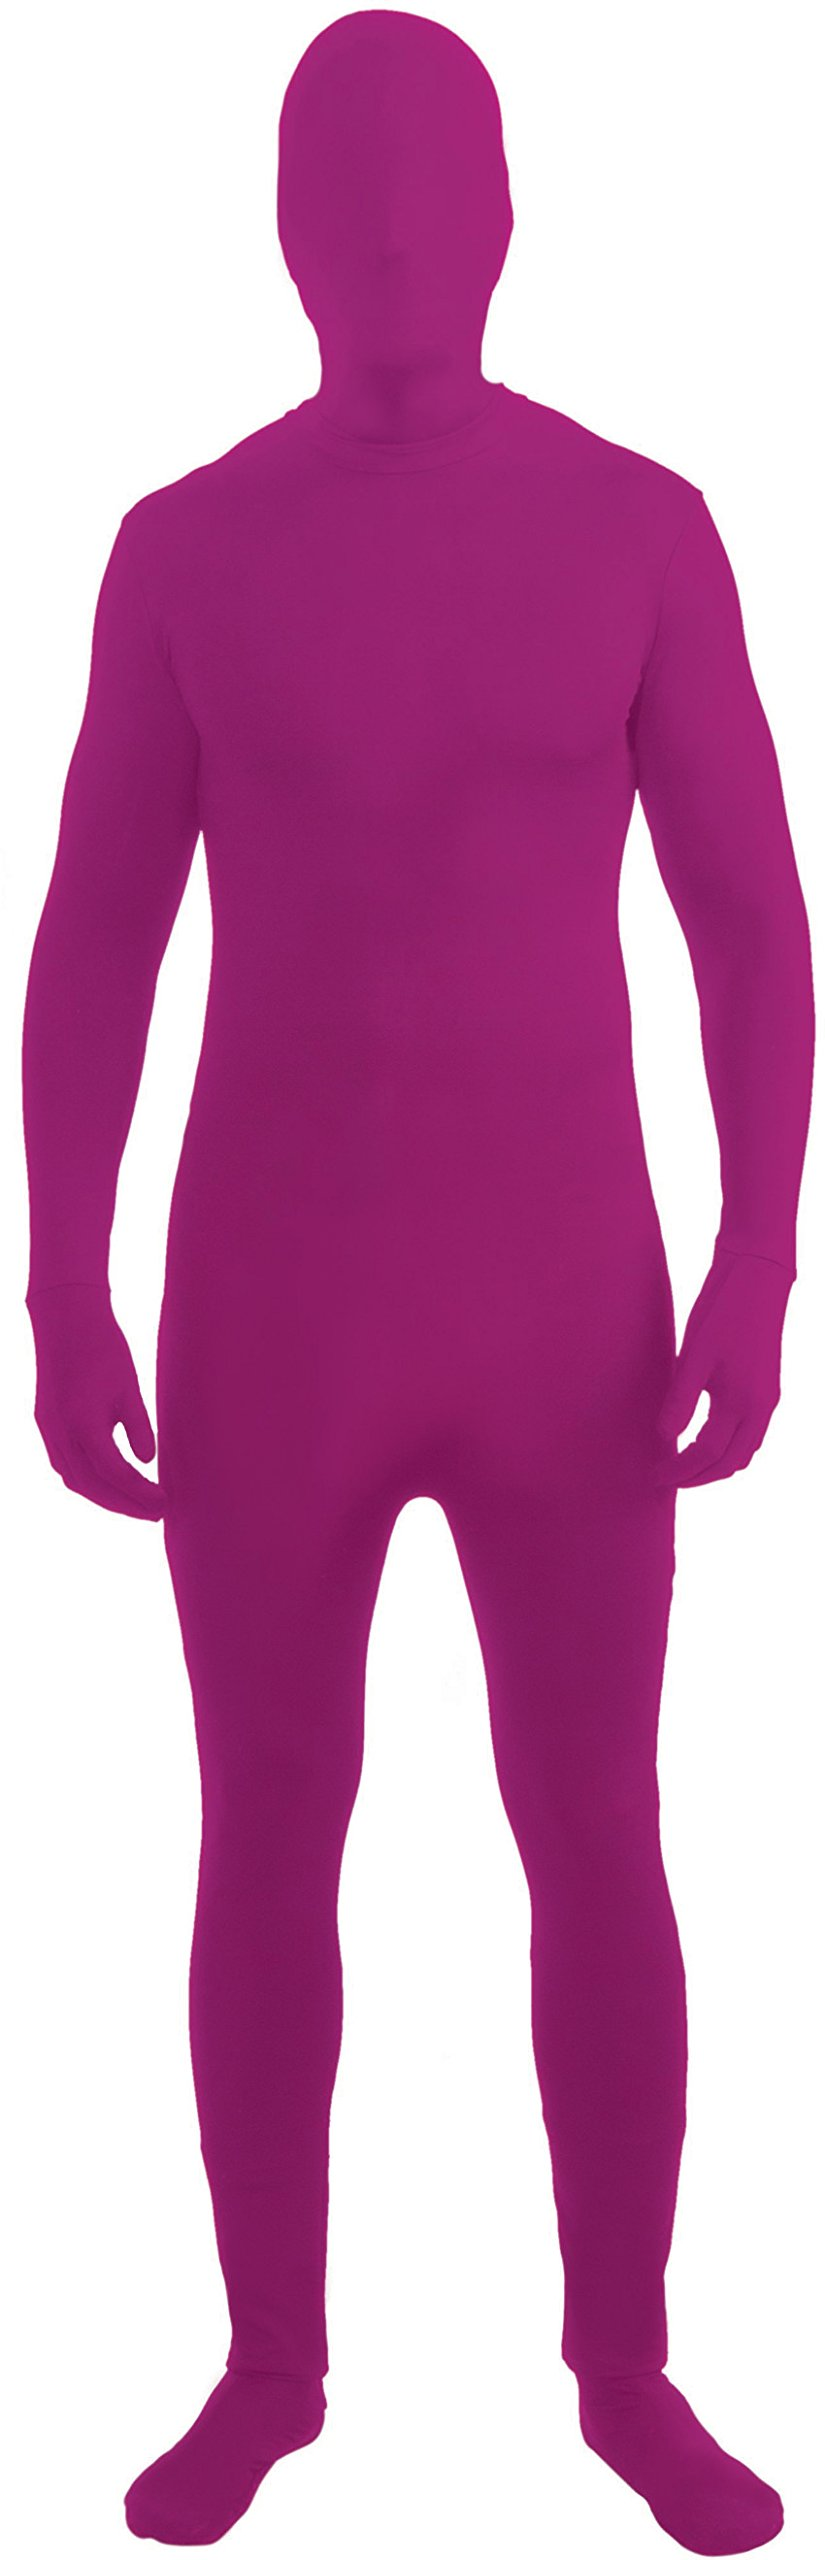 - 612PArmwCJL - Purple Invisible Skin Suit Kids Costume